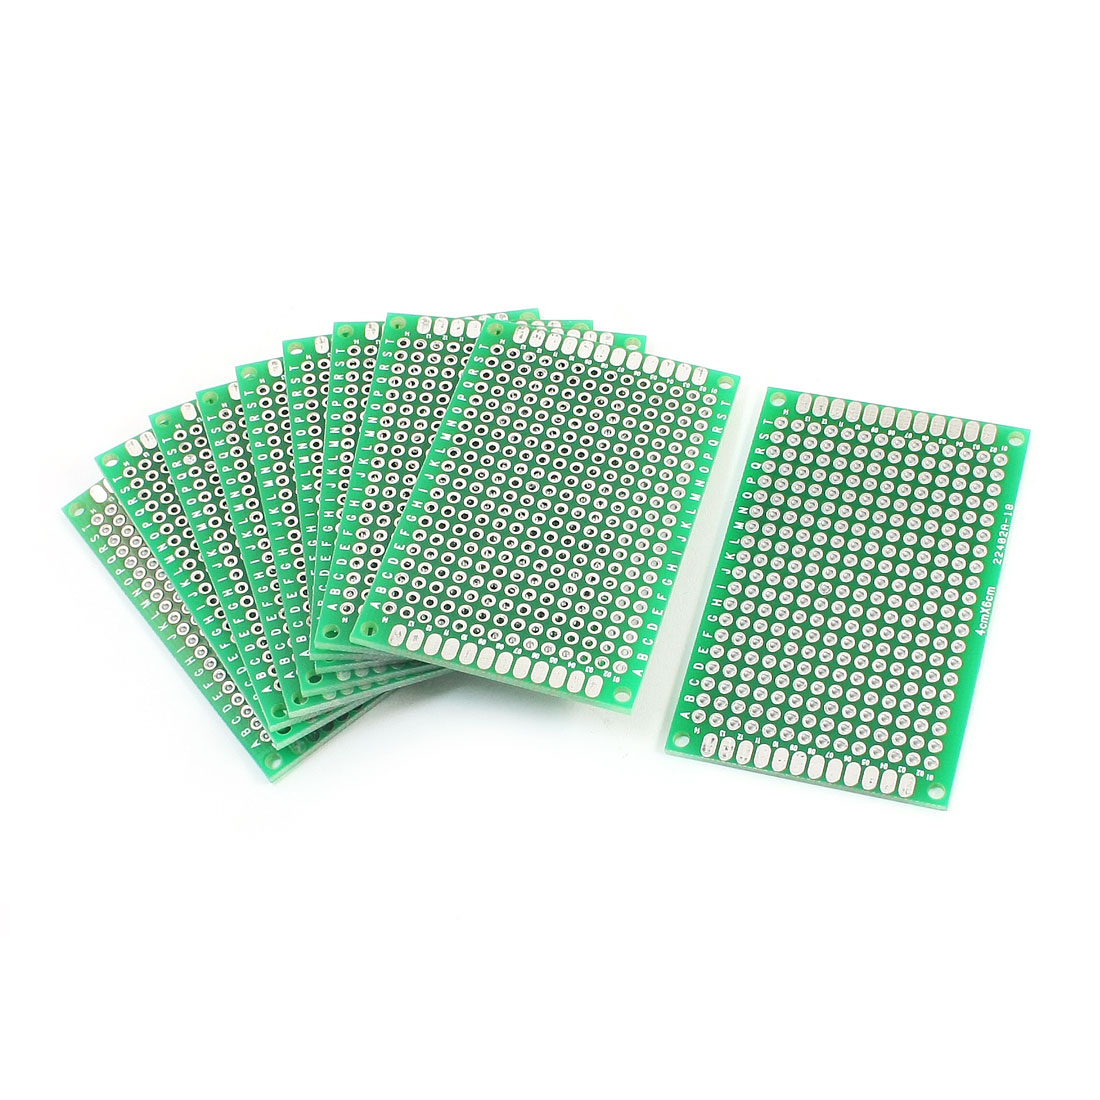 10Pcs DIY Universal Double Sided Protoboard Glass Fiber Prototyping PCB Printed Circuit Board 4cm x 6cm